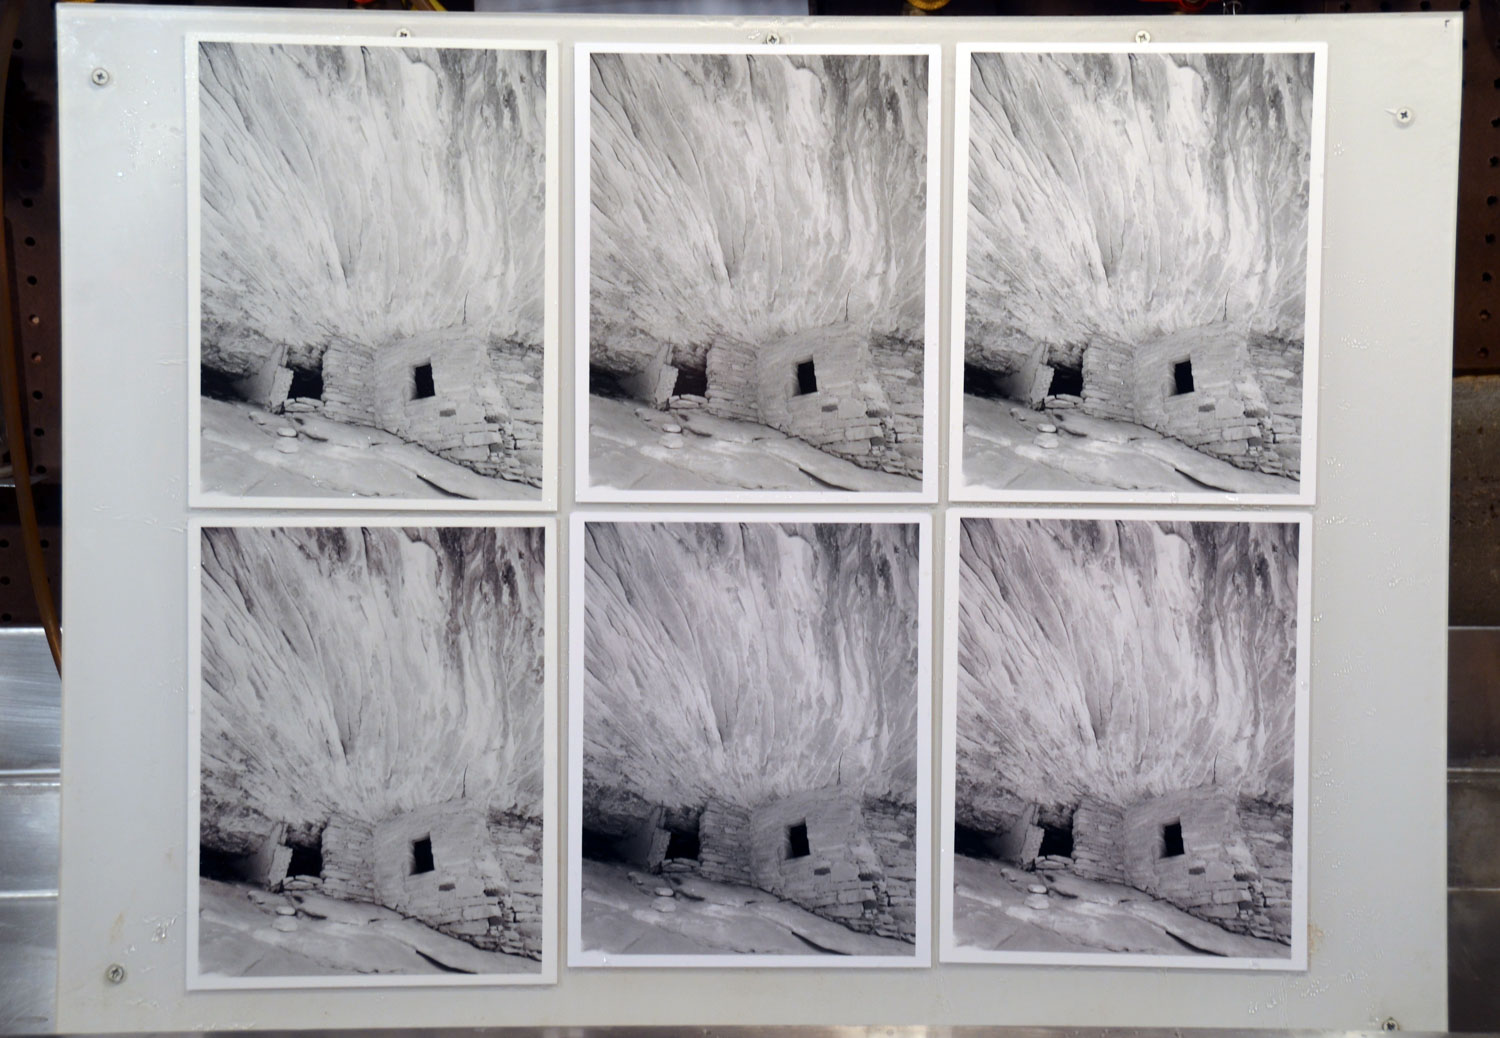 Negative #980 enlargement comparison (left to right). Top row - Adox, ILFORD MGIV and MG RC untoned. Bottom row - Adox, ILFORD MGIV and MG RC toned.